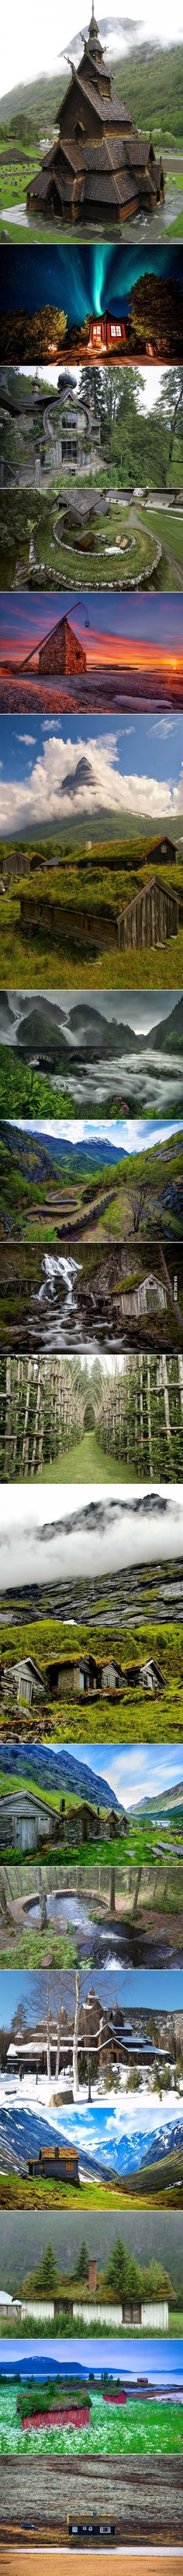 Norway... land of trolls and beautiful architecture - 9GAG